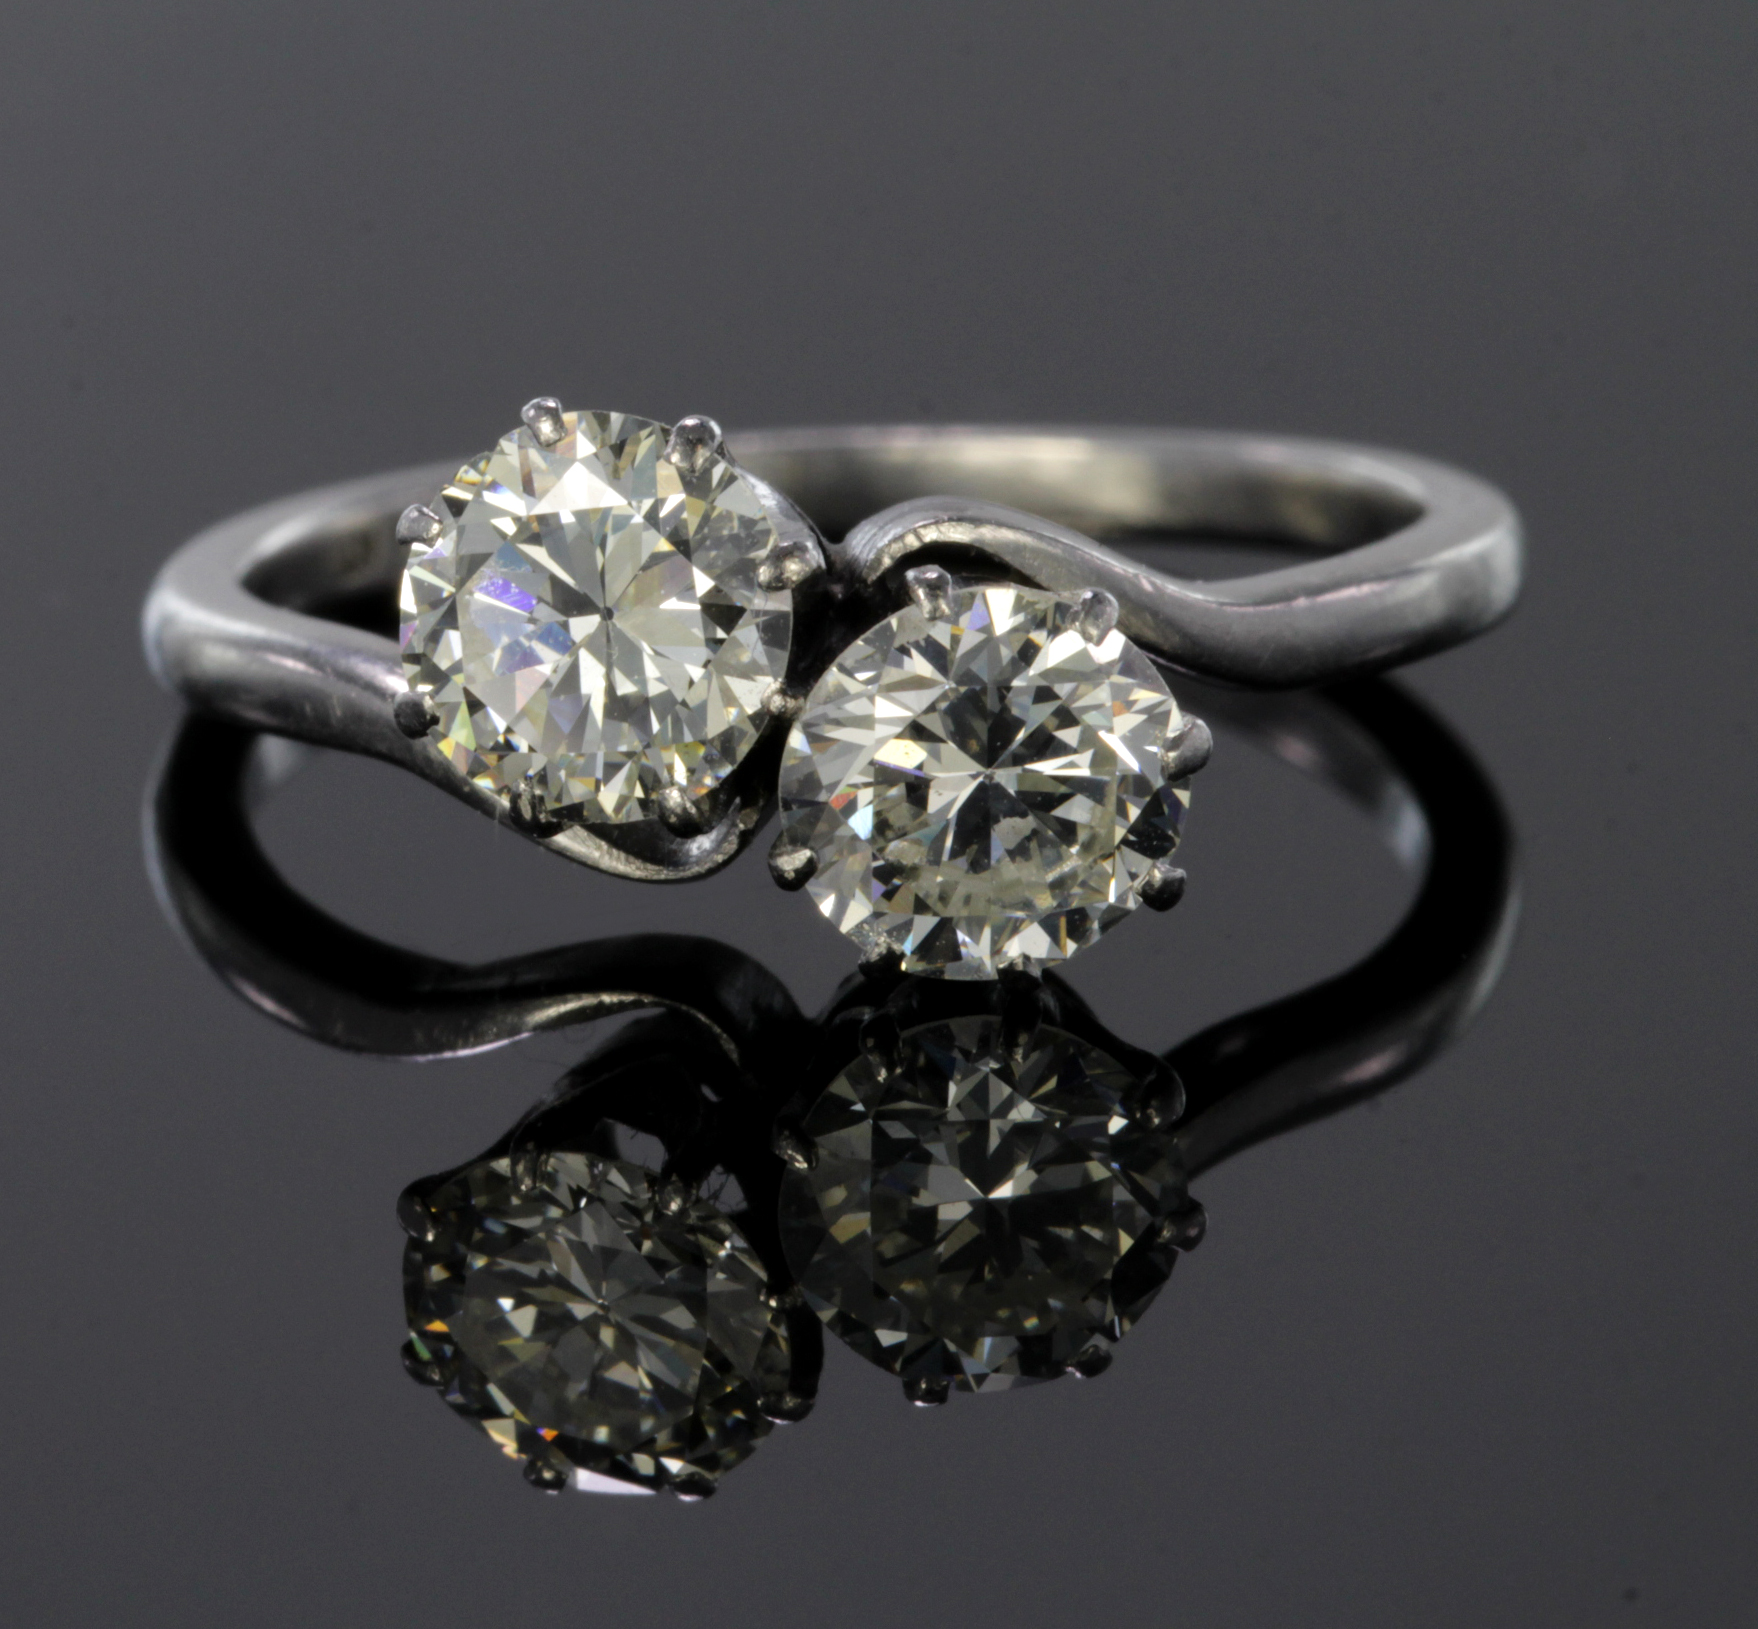 Lot 34 - Platinum ring set with two diamonds, each calculated to weigh approx. 0.75ct. Finger size M,